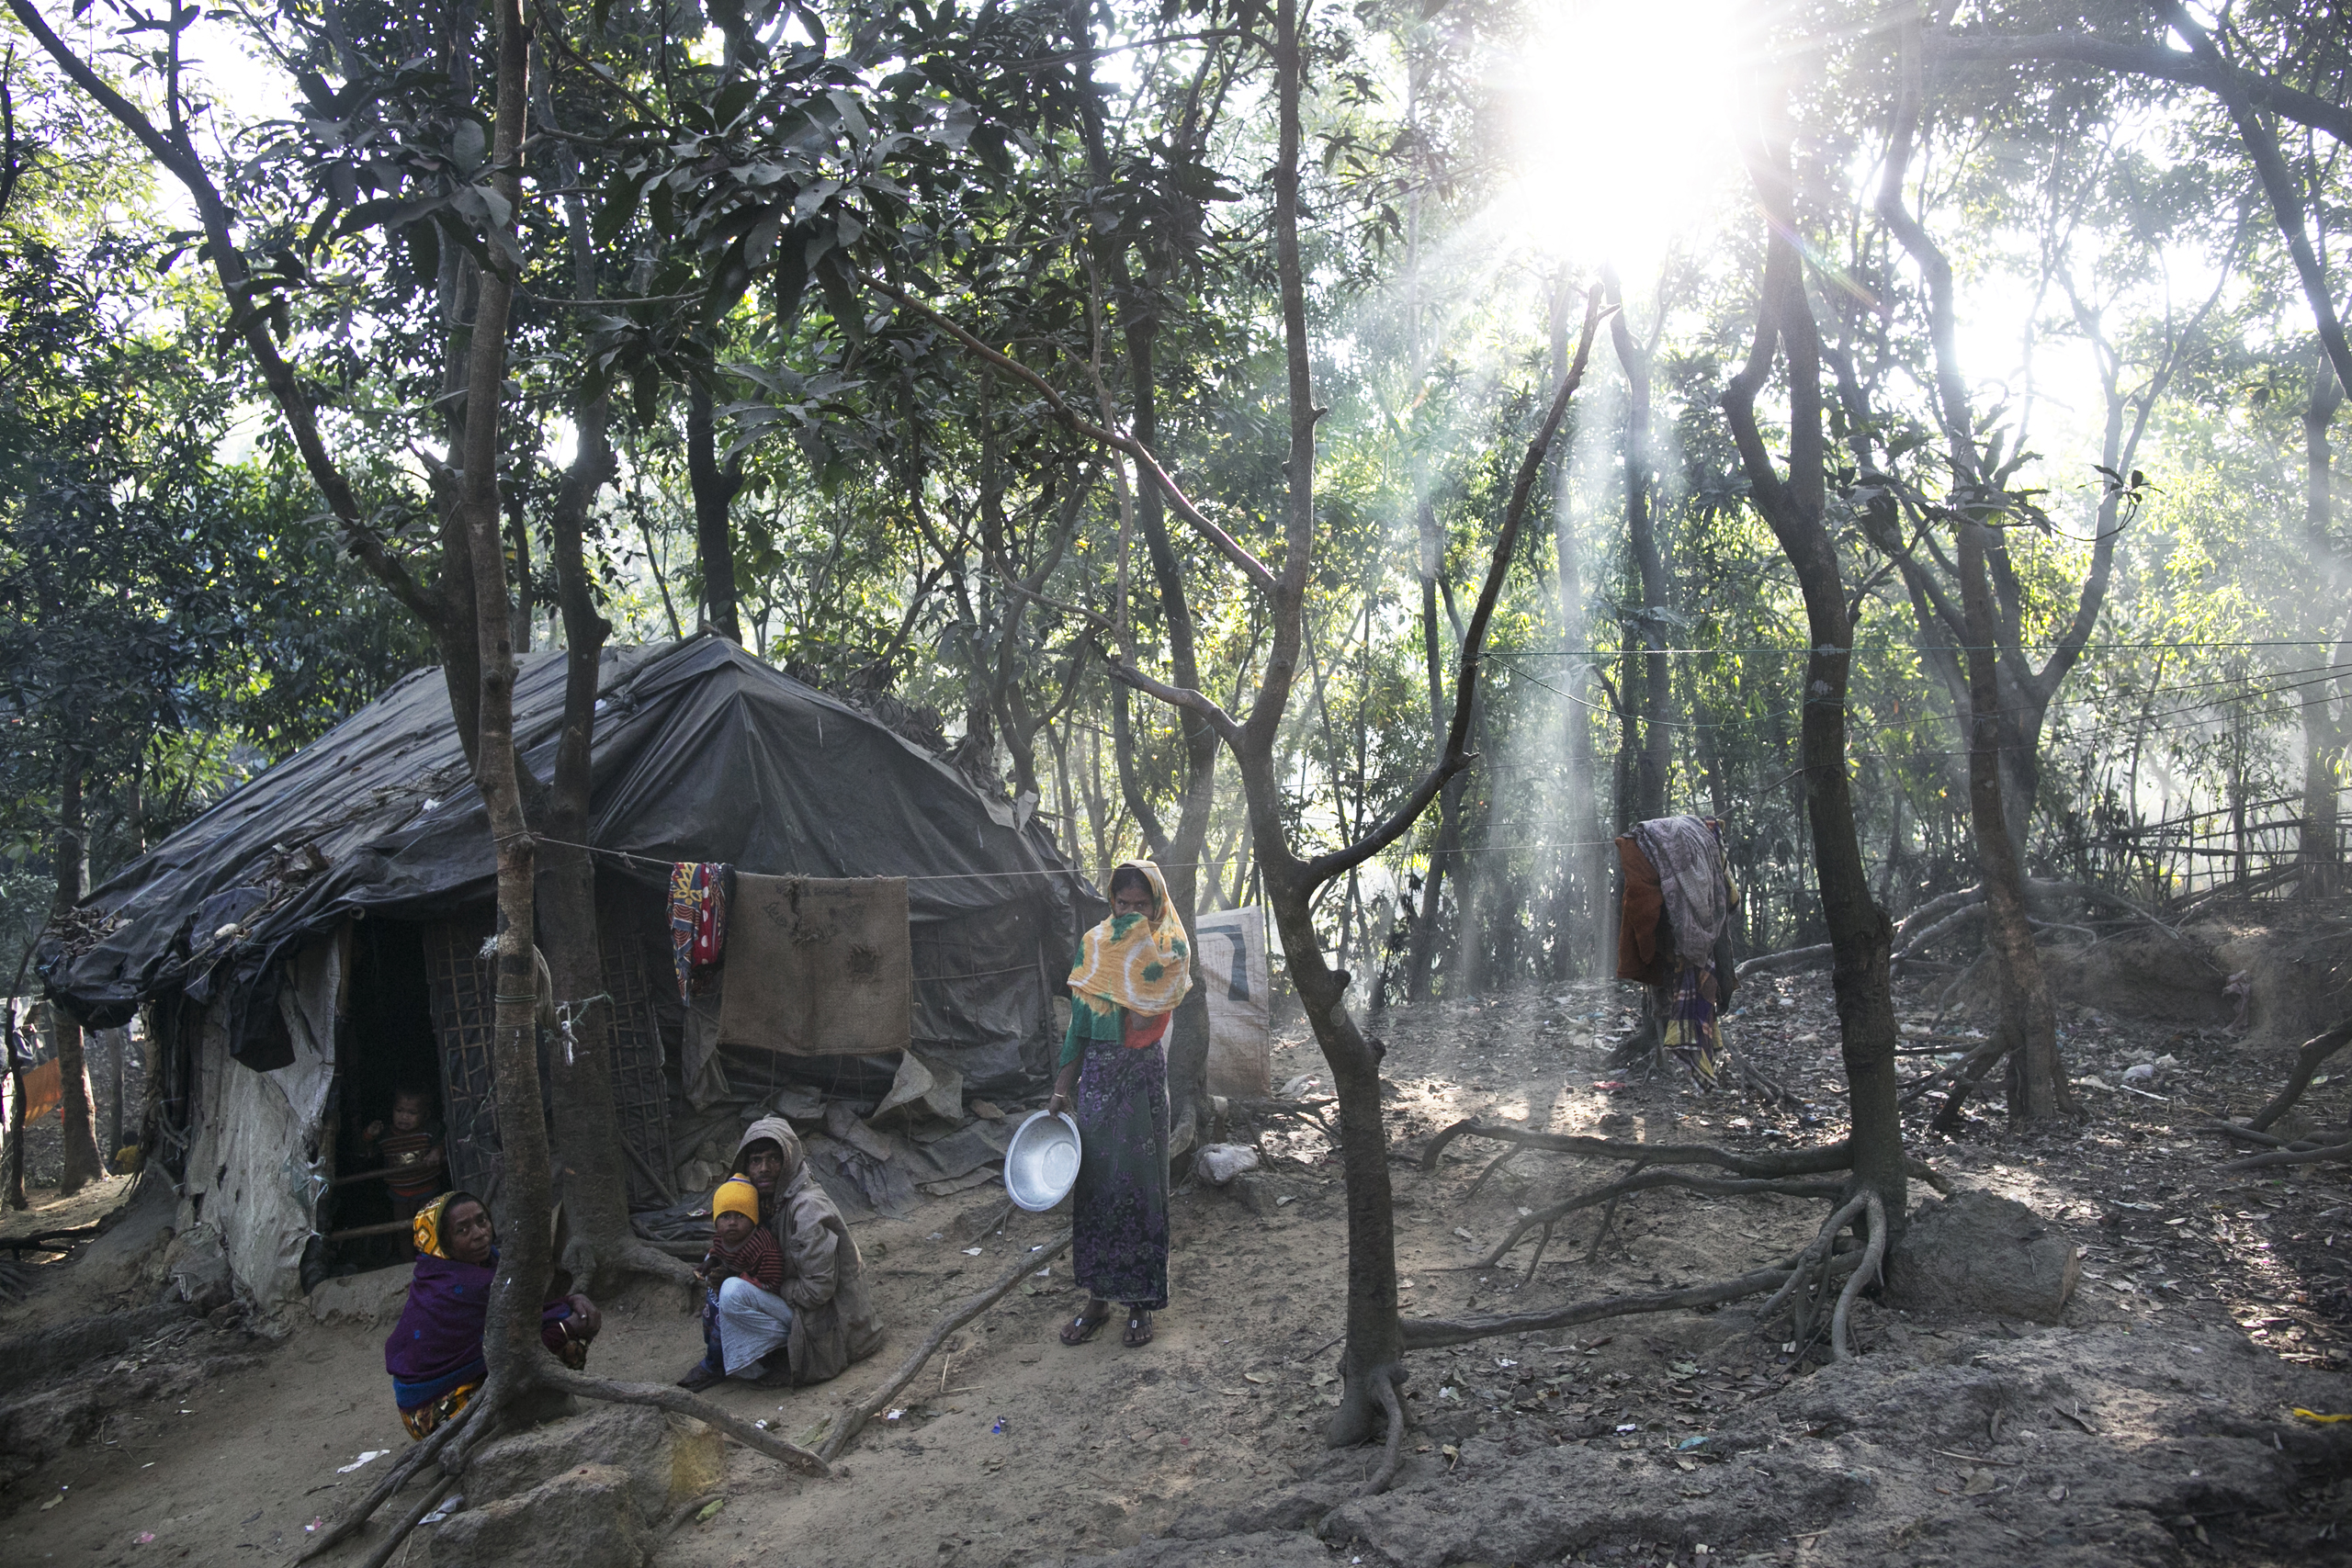 People are seen in the Kutapalong Rohingya refugee camp in Cox's Bazar, Bangladesh, on Jan. 21, 2017. More than 65,000 Rohingya Muslims have fled to Bangladesh from Myanmar since October last year, after the Burmese army launched a campaign it calls  clearance operations  in response to an attack on border police on October 9, believed to have been carried out by Rohingya militants.